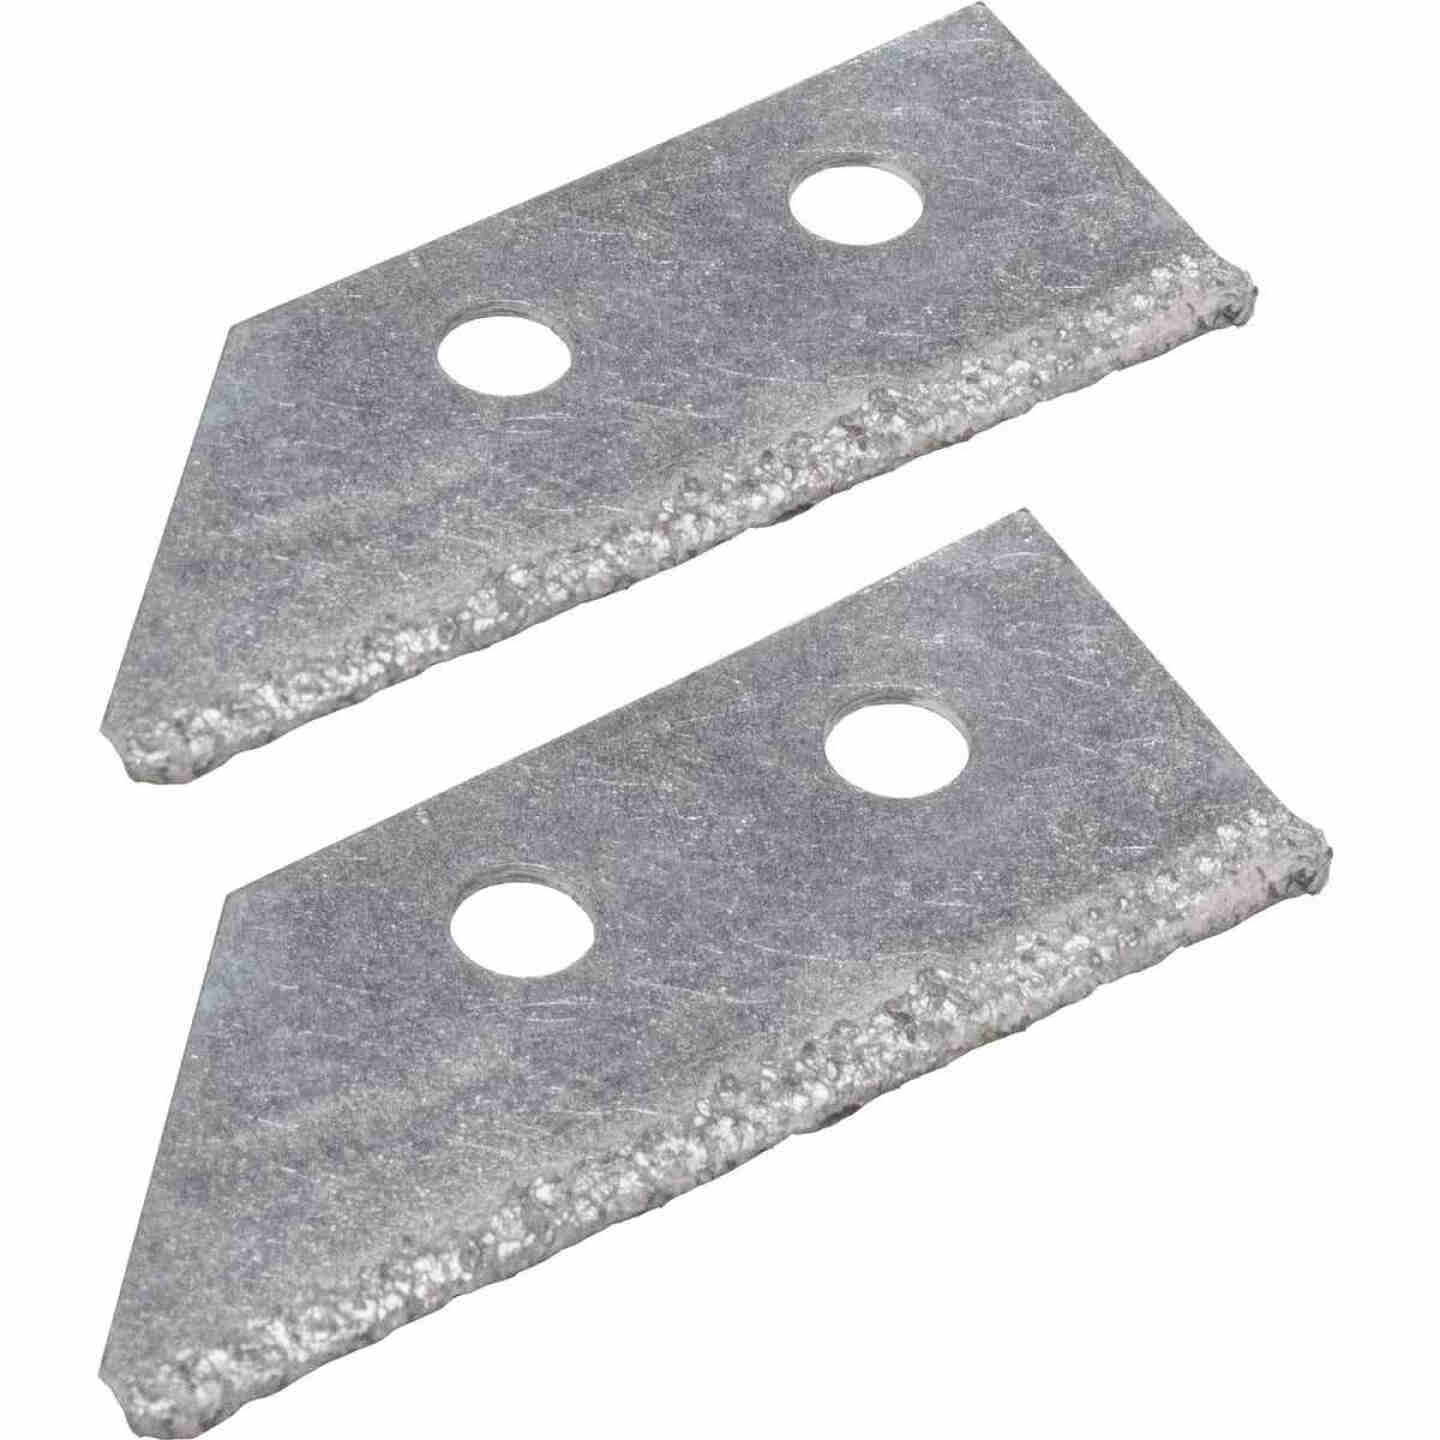 Marshalltown Tungten Carbide Grout Saw Blade (2-Pack) Image 1